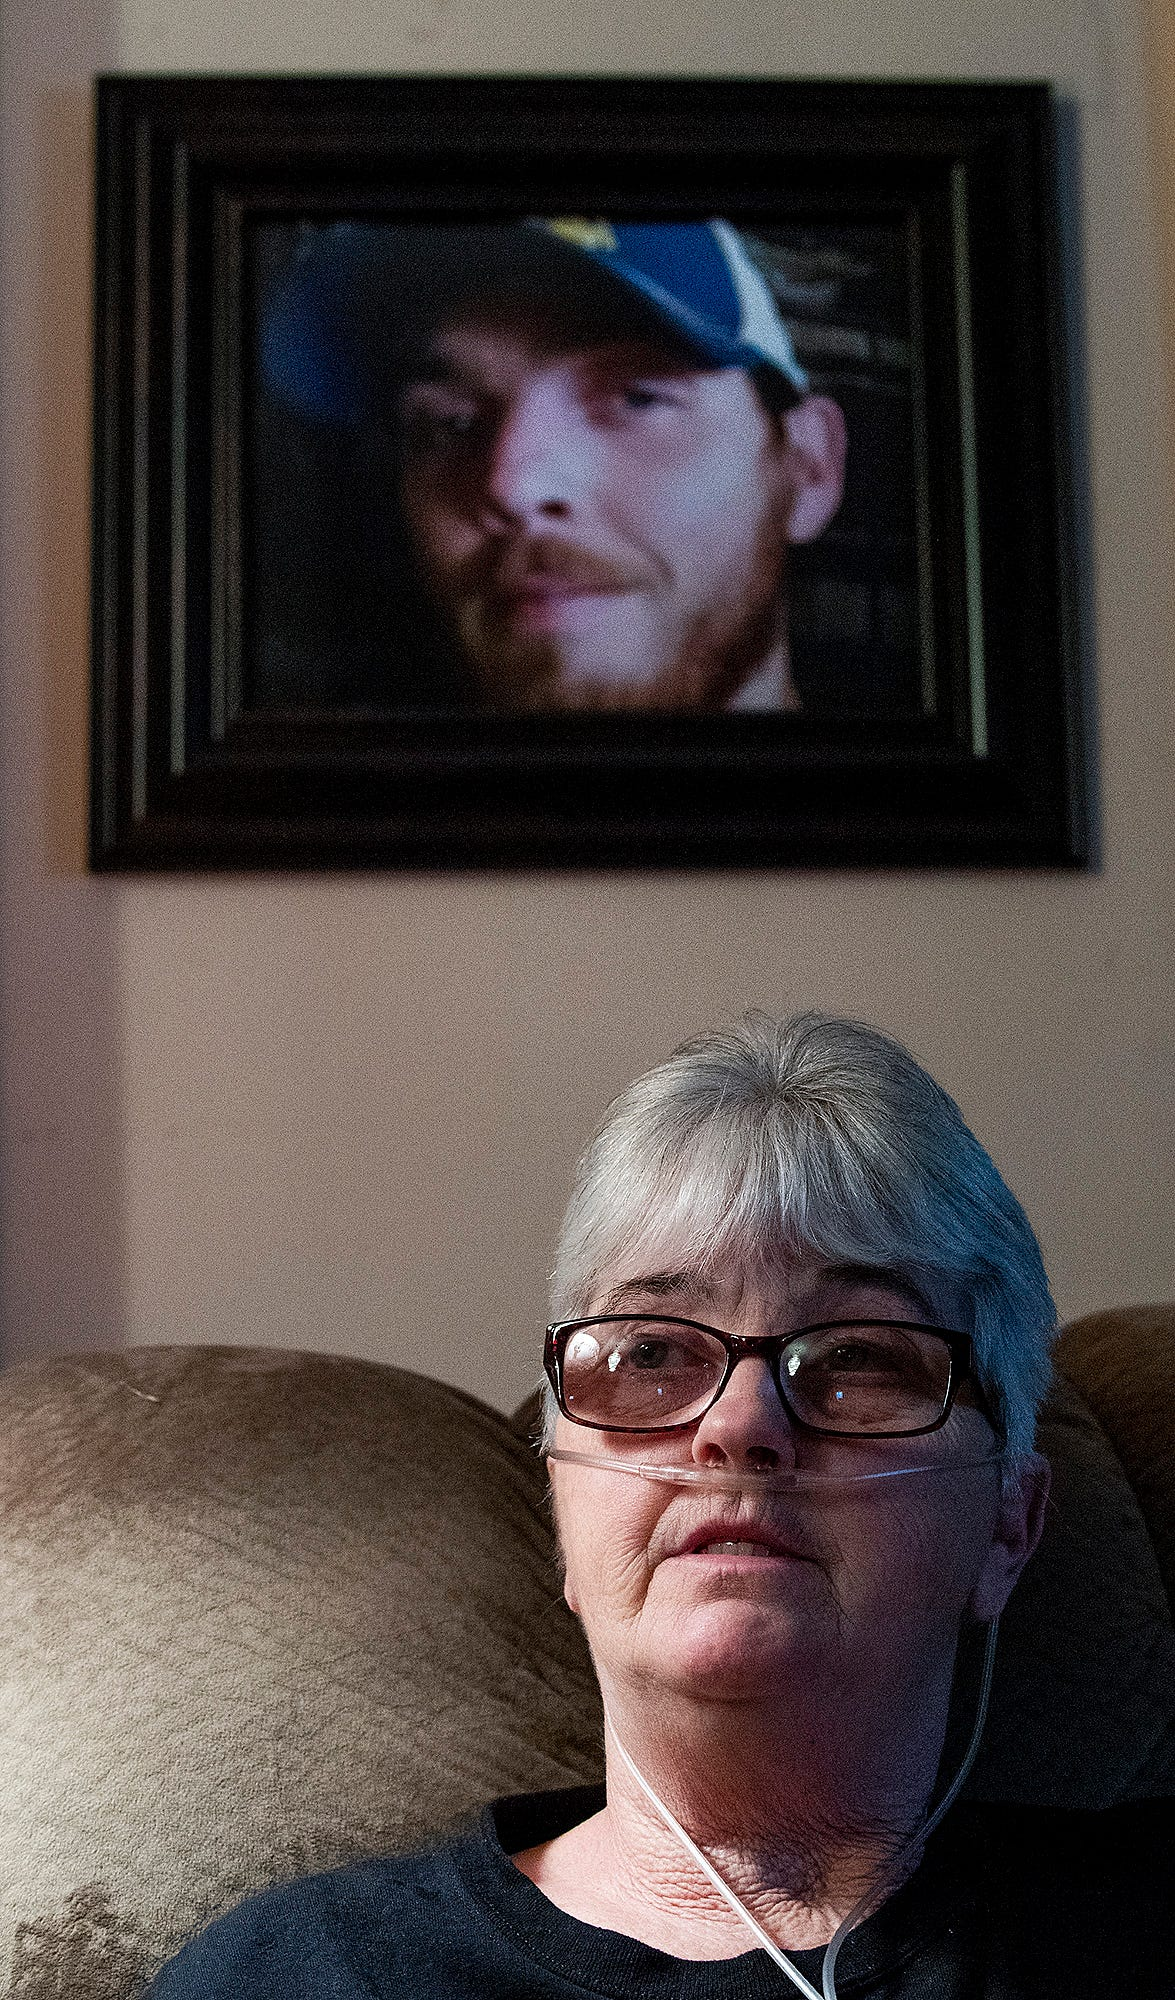 Sandy Ray discusses the death of son Steven Davis, whose photo hangs on the wall in her Uniontown, Ala., home. Davis was beaten by correctional officers in Donaldson Correctional Faculty and died of his injuries.